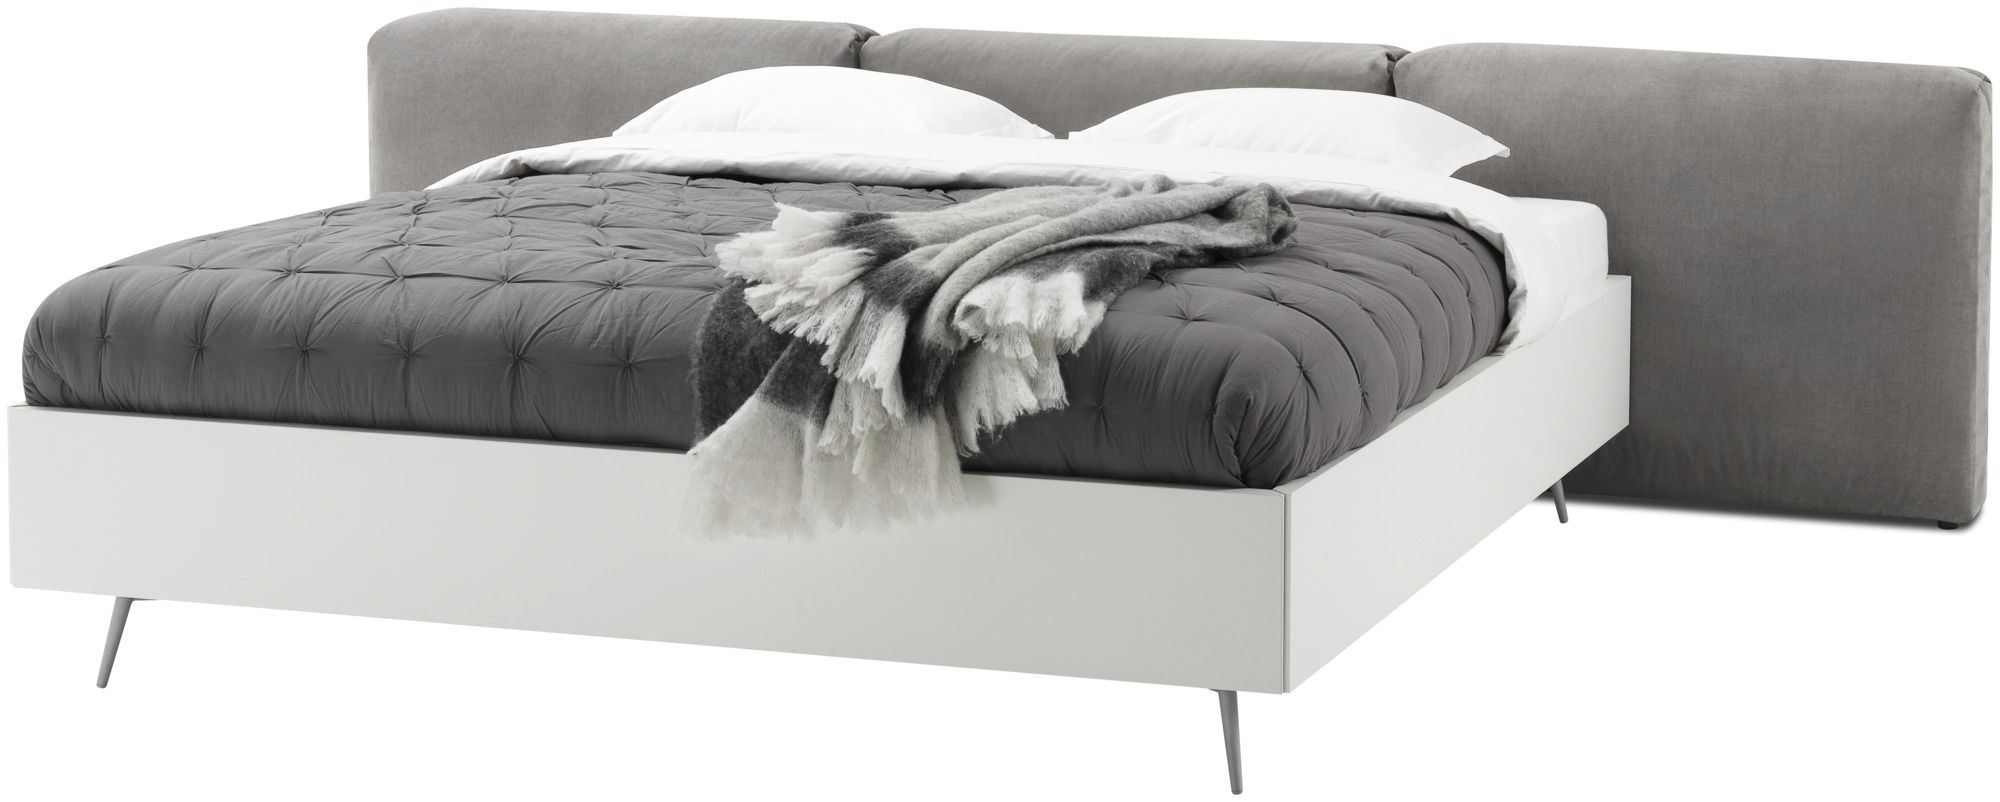 Double Bed Contemporary With Upholstered Headboard With In - Boconcept bedroom furniture